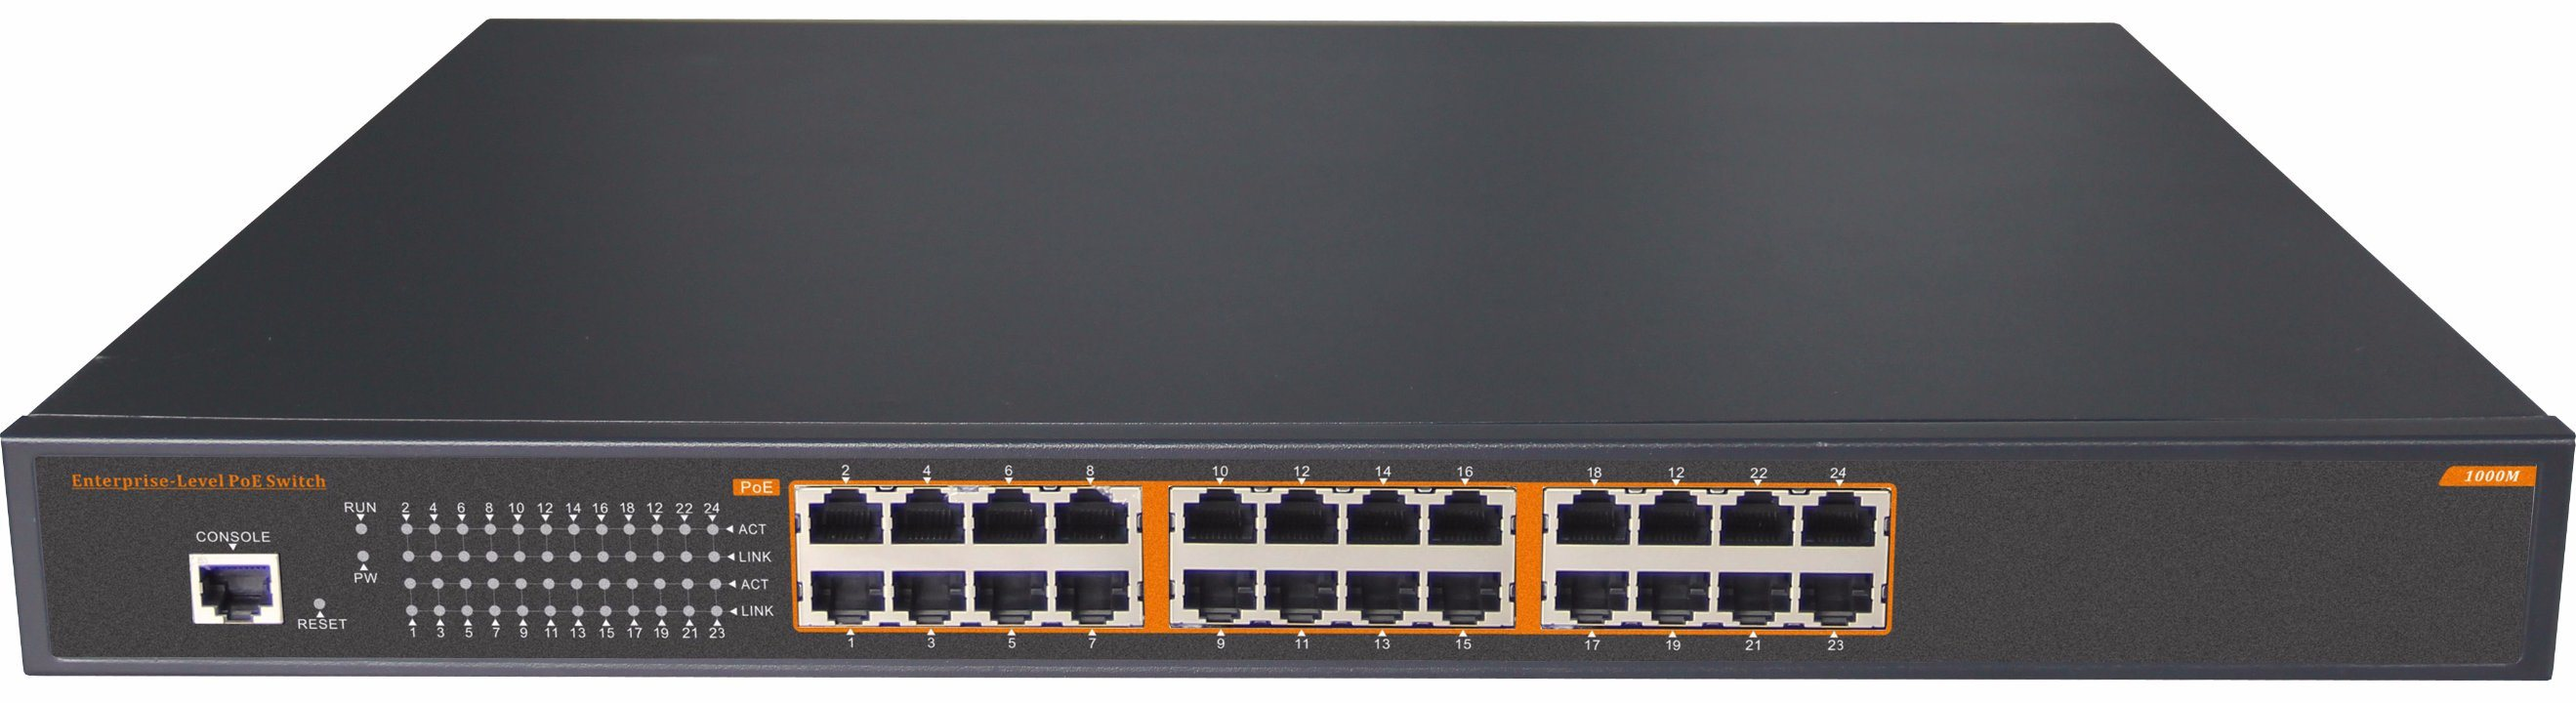 24 Gigabit Port High Power 30W Poe Ethernet Network Switch